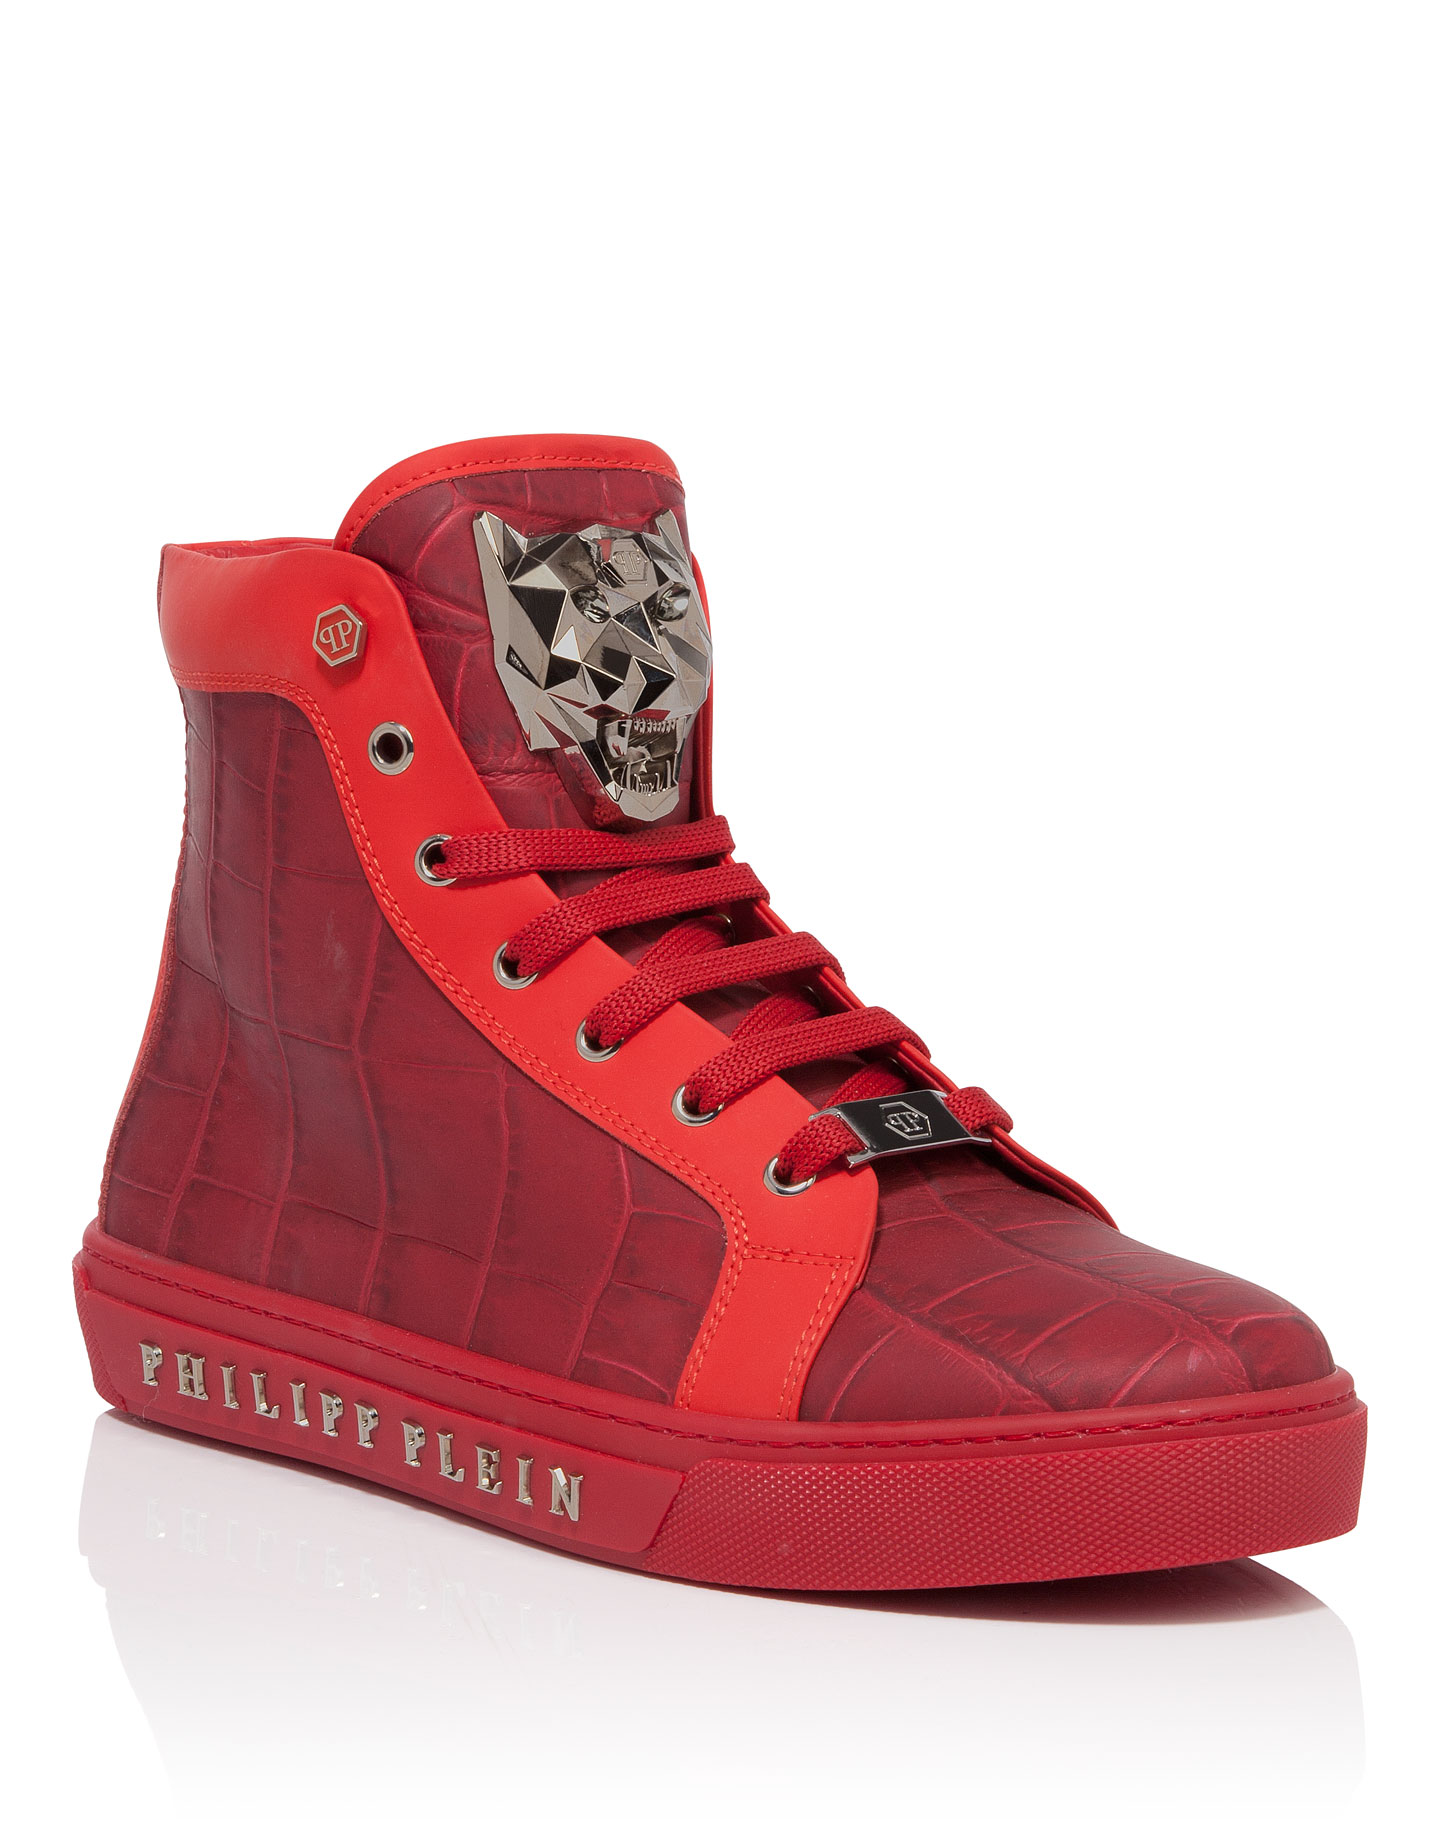 high sneakers america philipp plein outlet. Black Bedroom Furniture Sets. Home Design Ideas